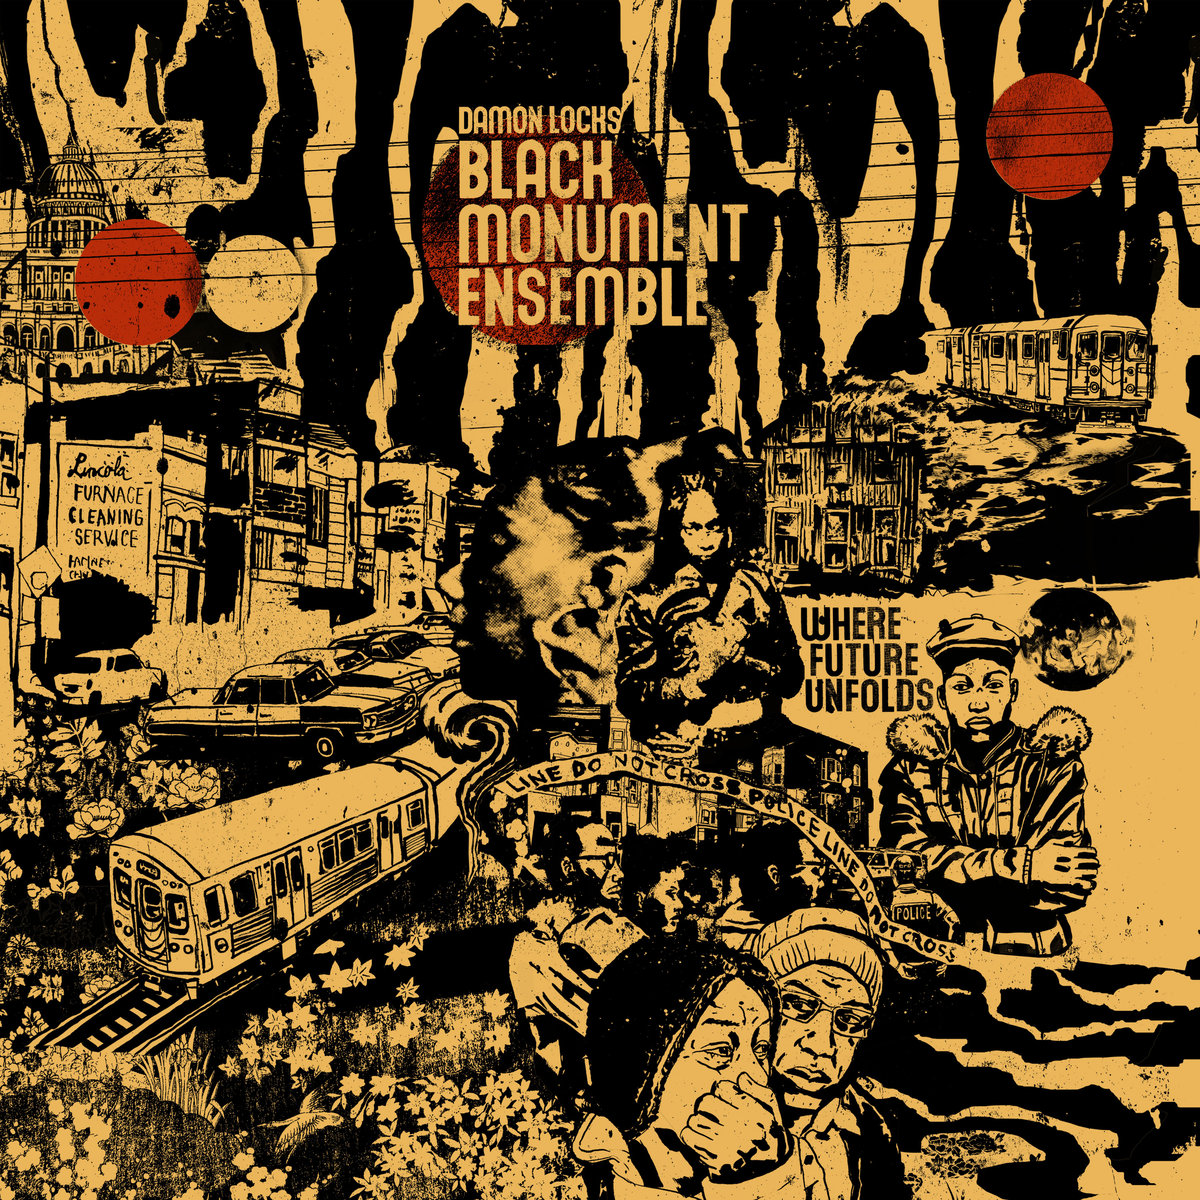 Damon Locks/Black Monument Ensemble Where Future Unfolds